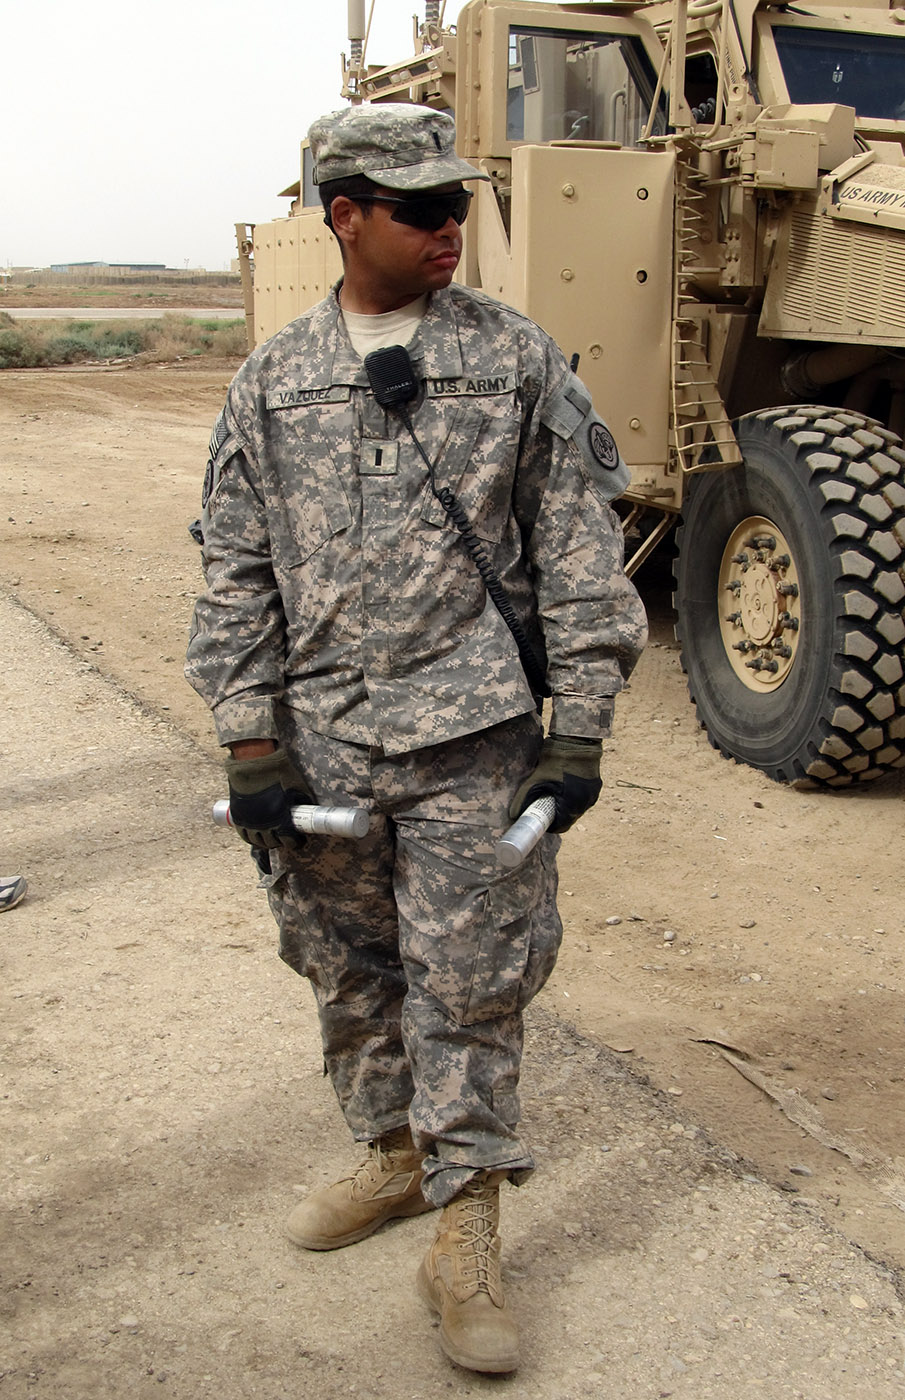 U.S. Army First Lieutenant Omar Vazquez, 25, of Hamilton, New Jersey, assigned to the 2nd Squadron, 3rd Armored Cavalry Regiment, based in Fort Hood, Texas, died of wounds suffered April 22, 2011, when insurgents in Numaniyah, Iraq, attacked his unit with an improvised explosive device. He is survived by his parents Maria and Pablo, sister Marisel, and brothers Pablo and Javier.